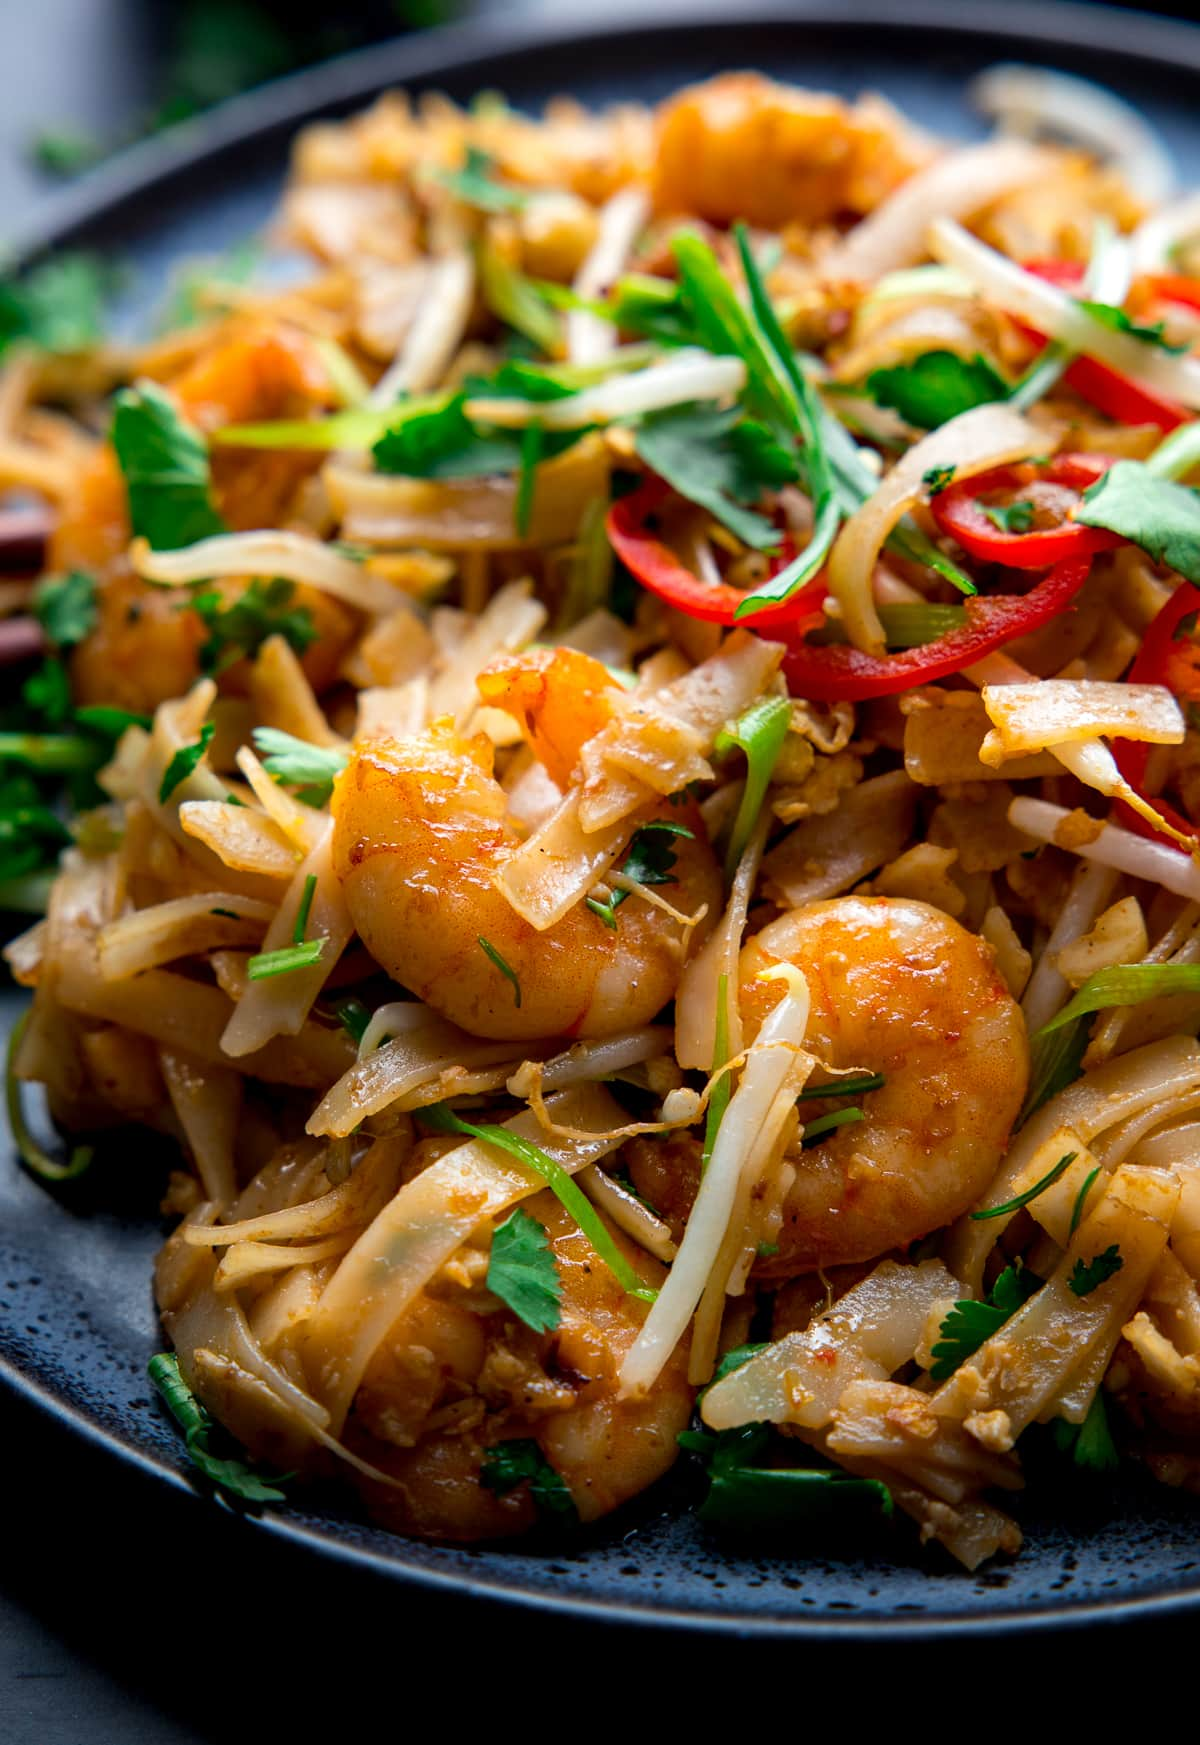 Close up image of Pad Thai with king prawns on a plate